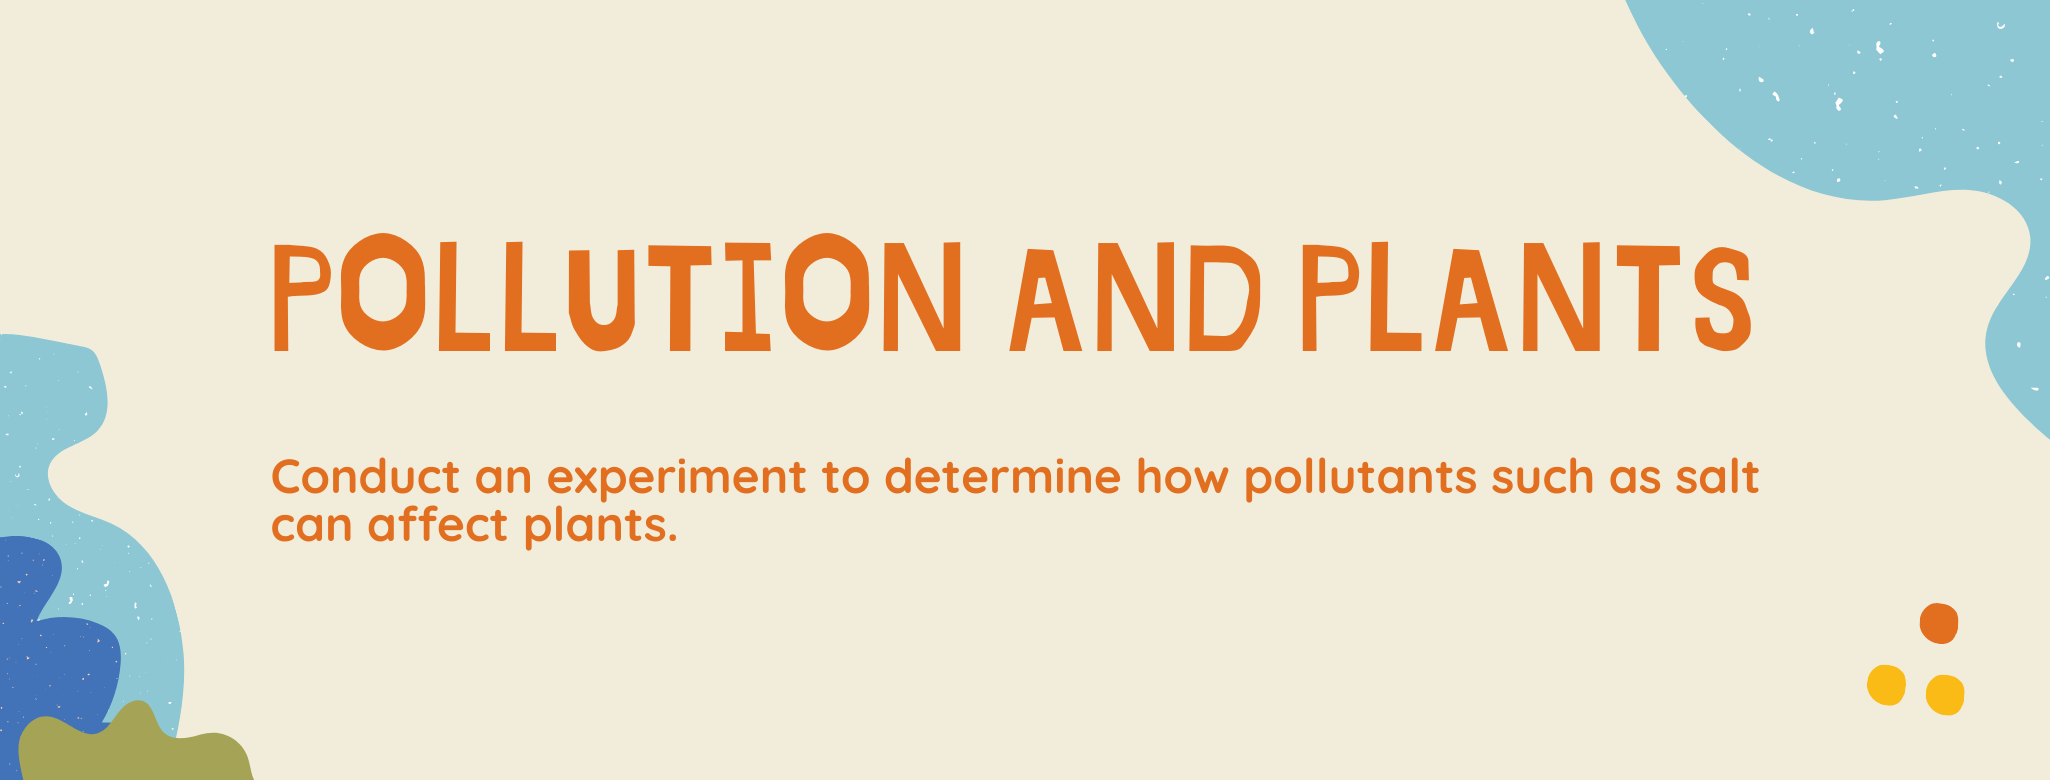 Pollution and Plants